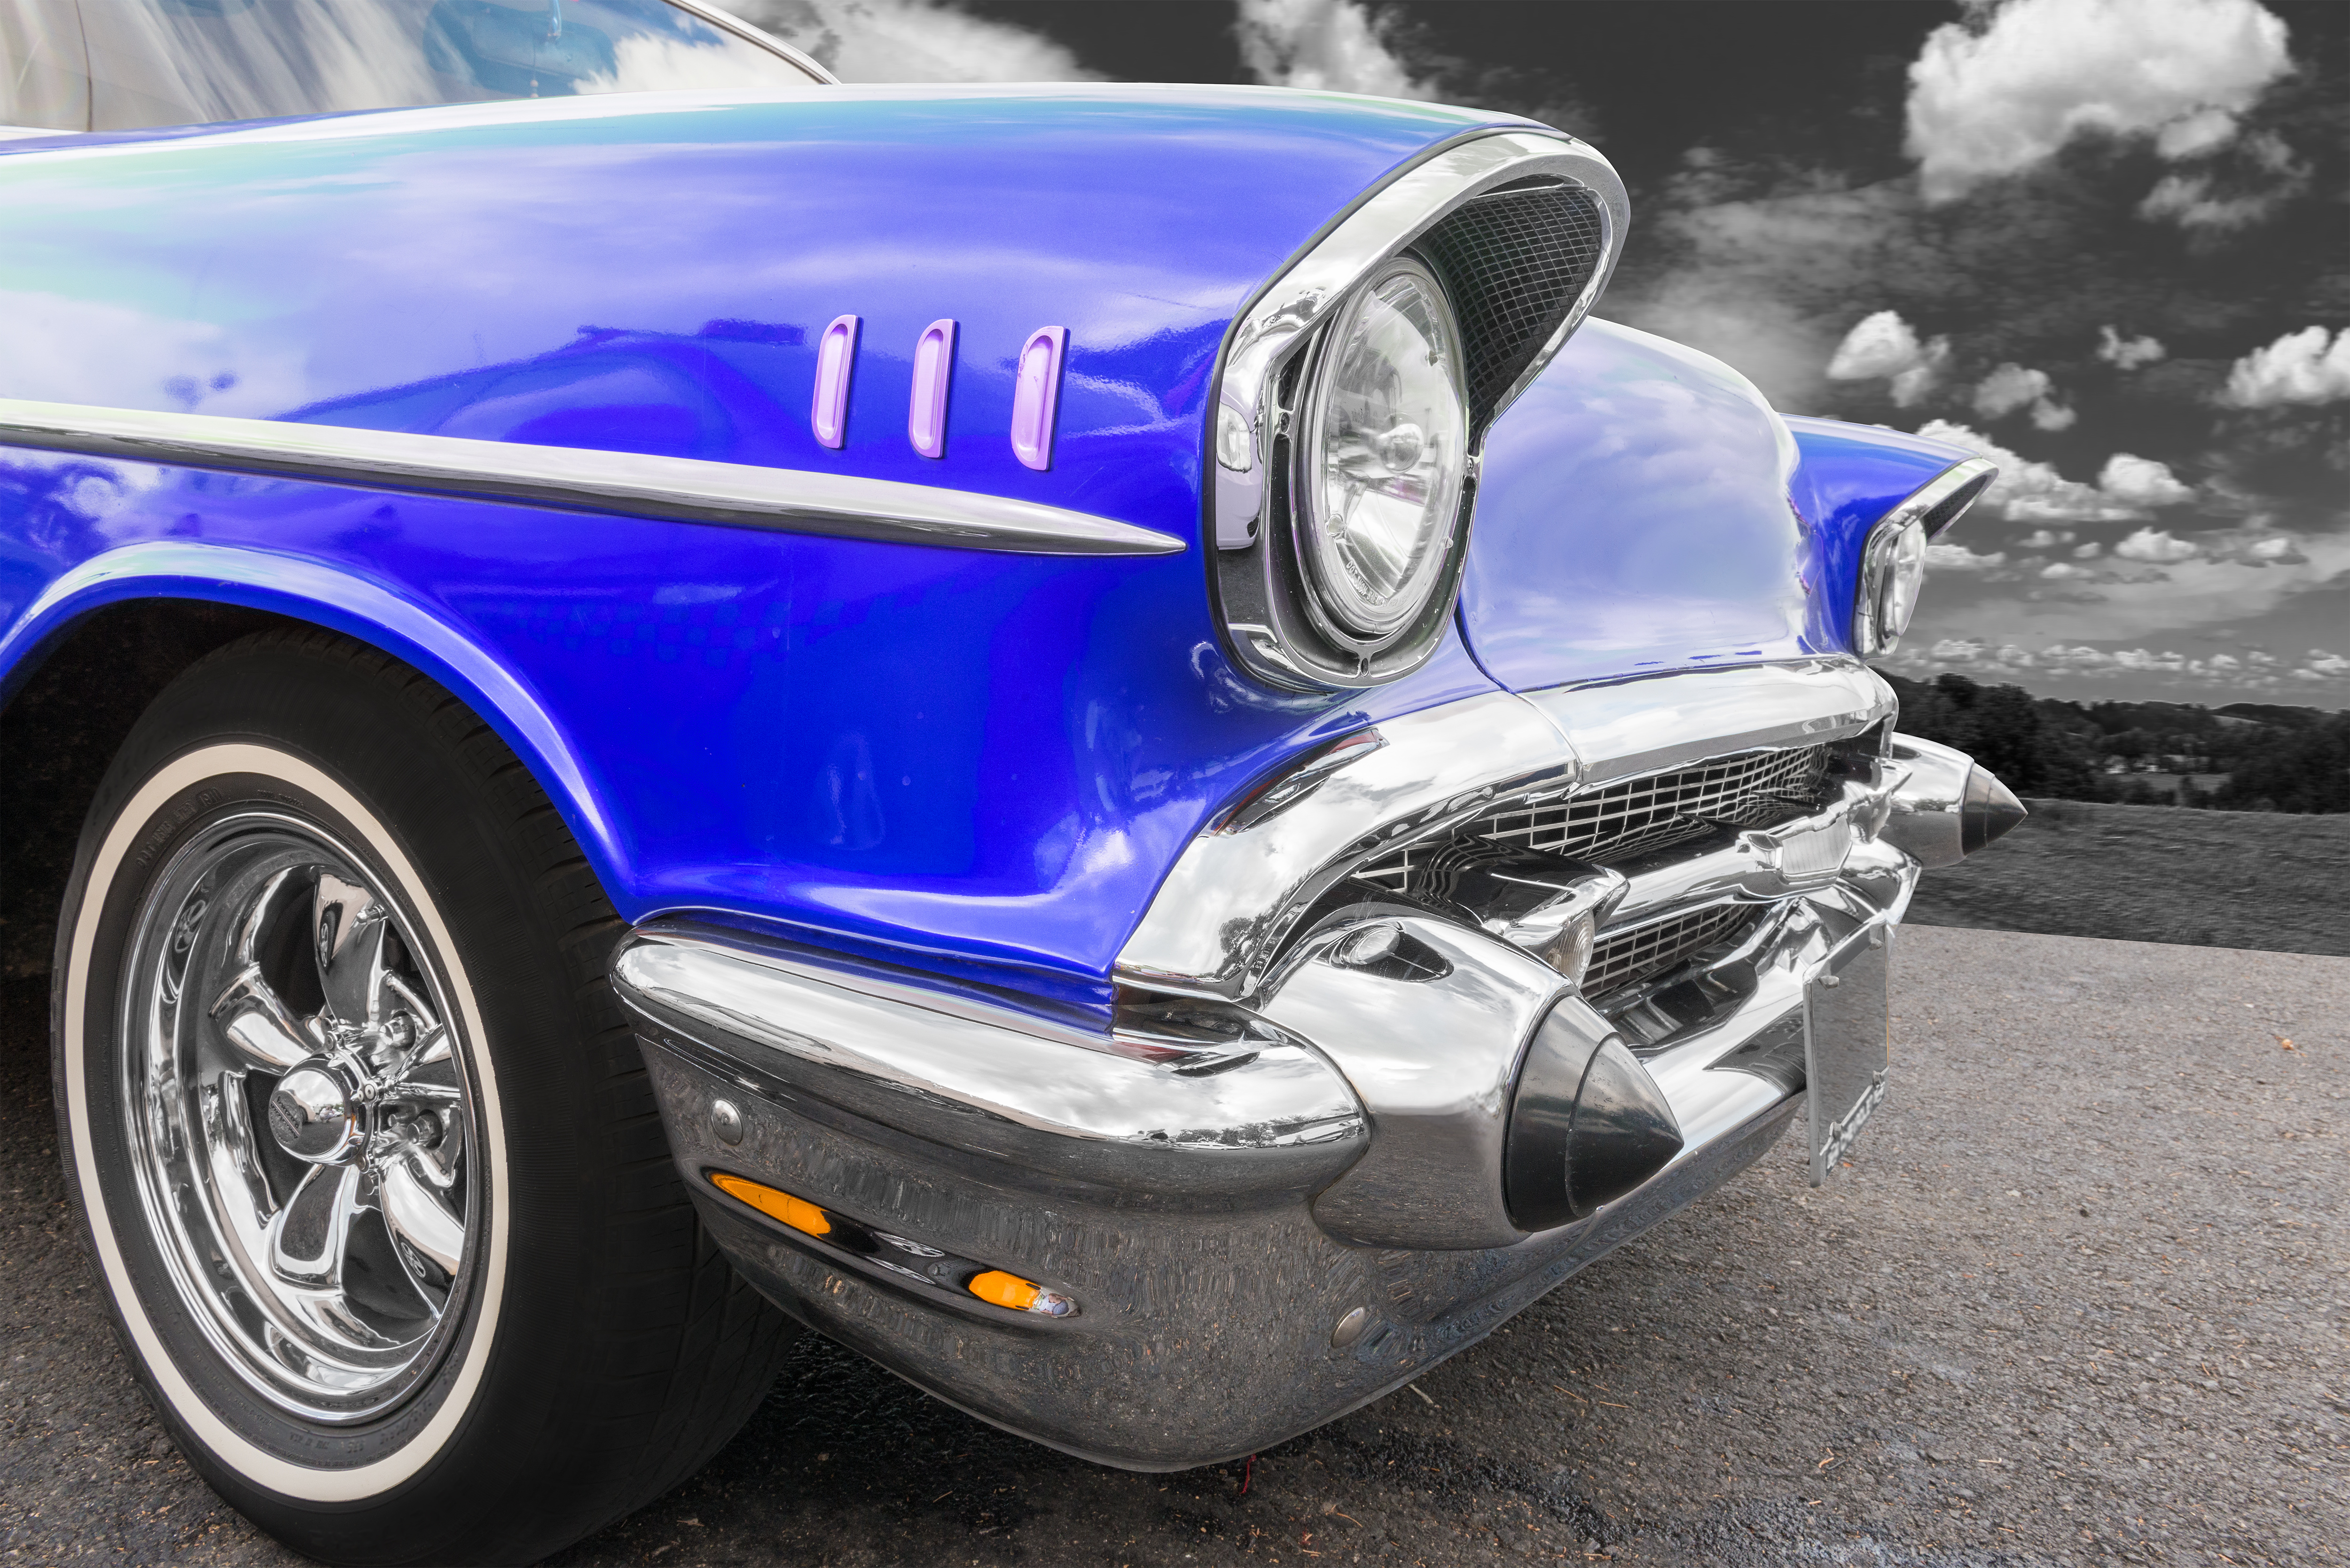 Classic blue car restored